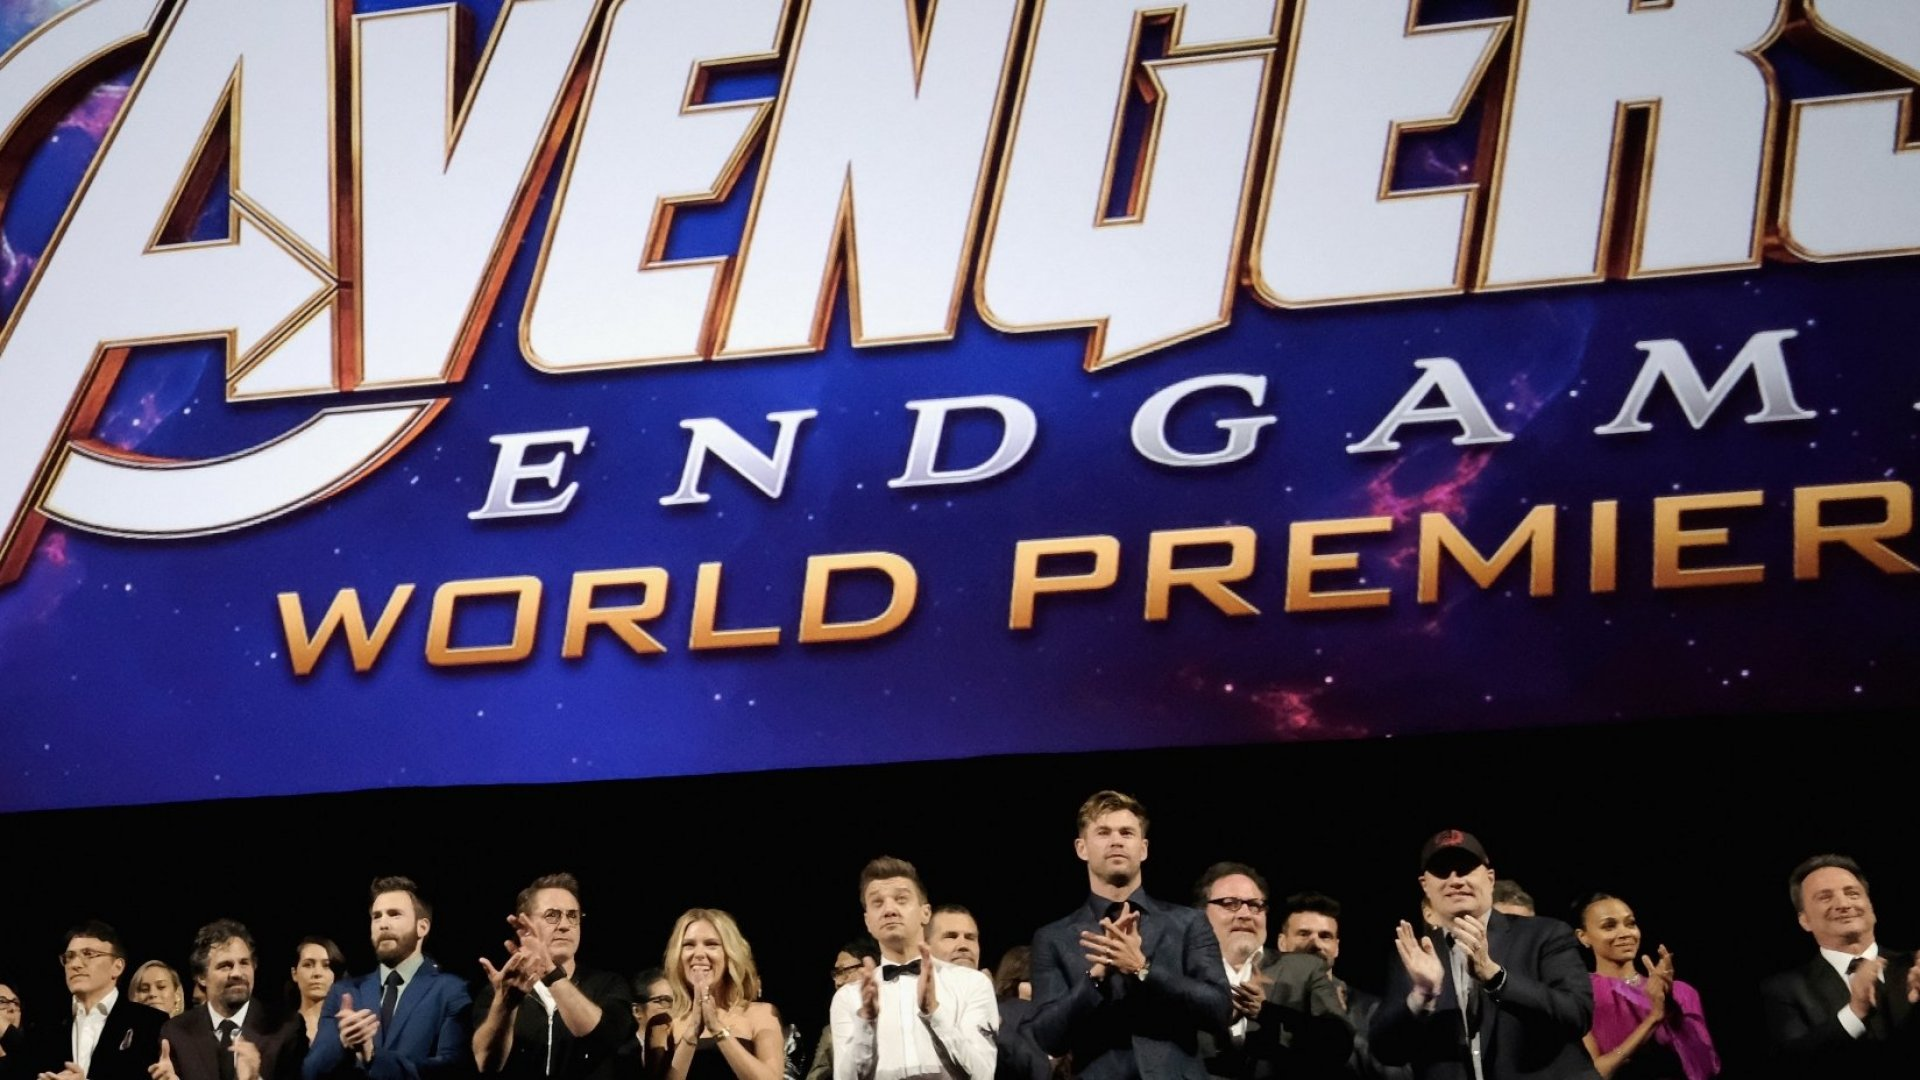 'Avengers: Endgame' Is Set to Break Box Office Records This Weekend. Use Its Strategy to Produce a Blockbuster Product of Your Own